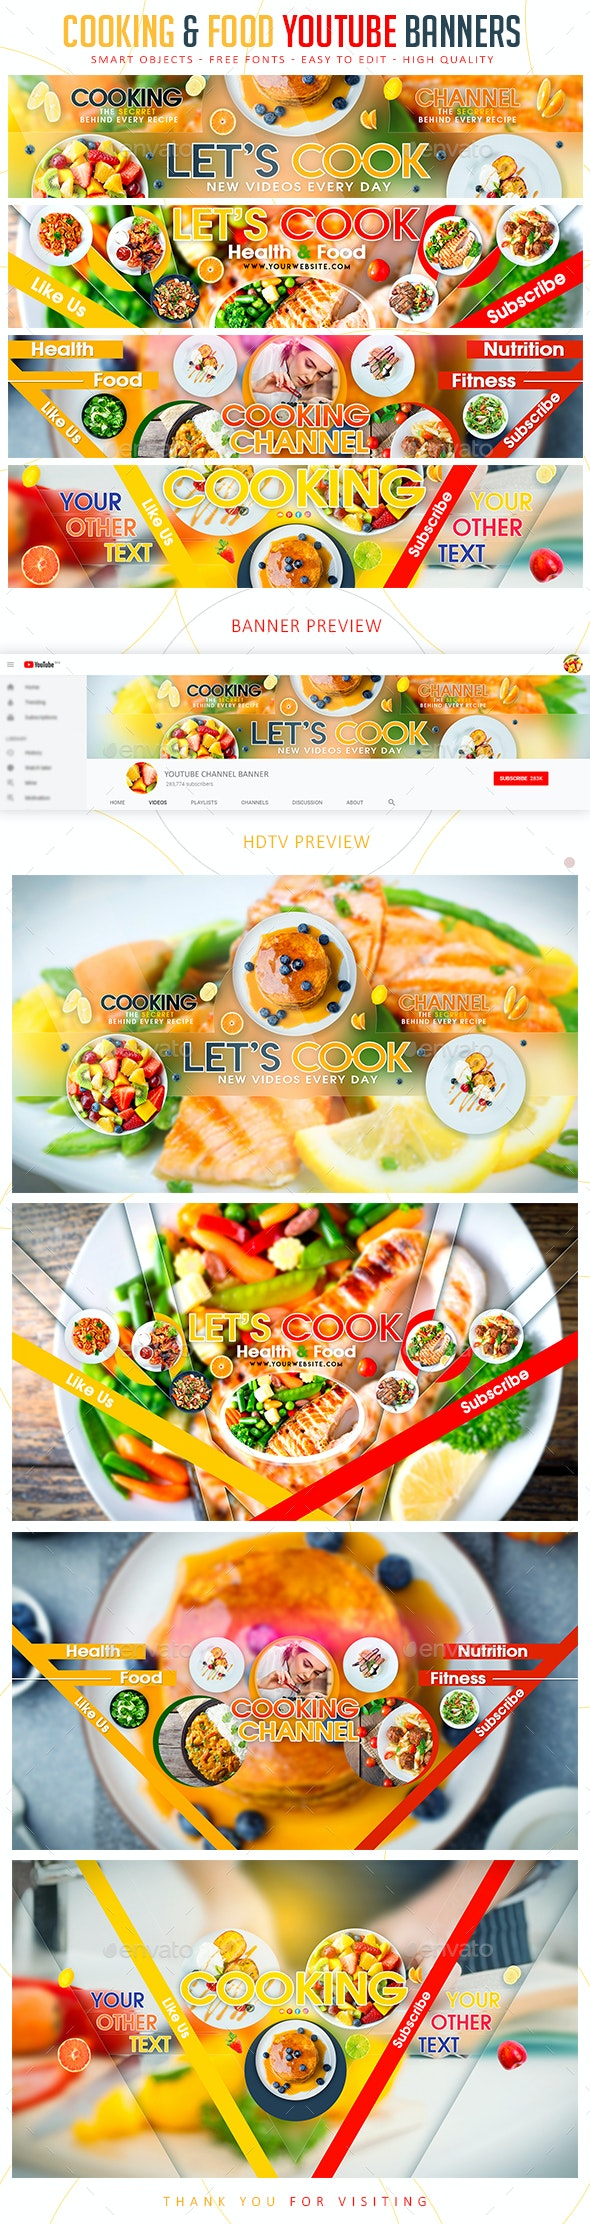 Cooking & Food YouTube Banners - YouTube Social Media